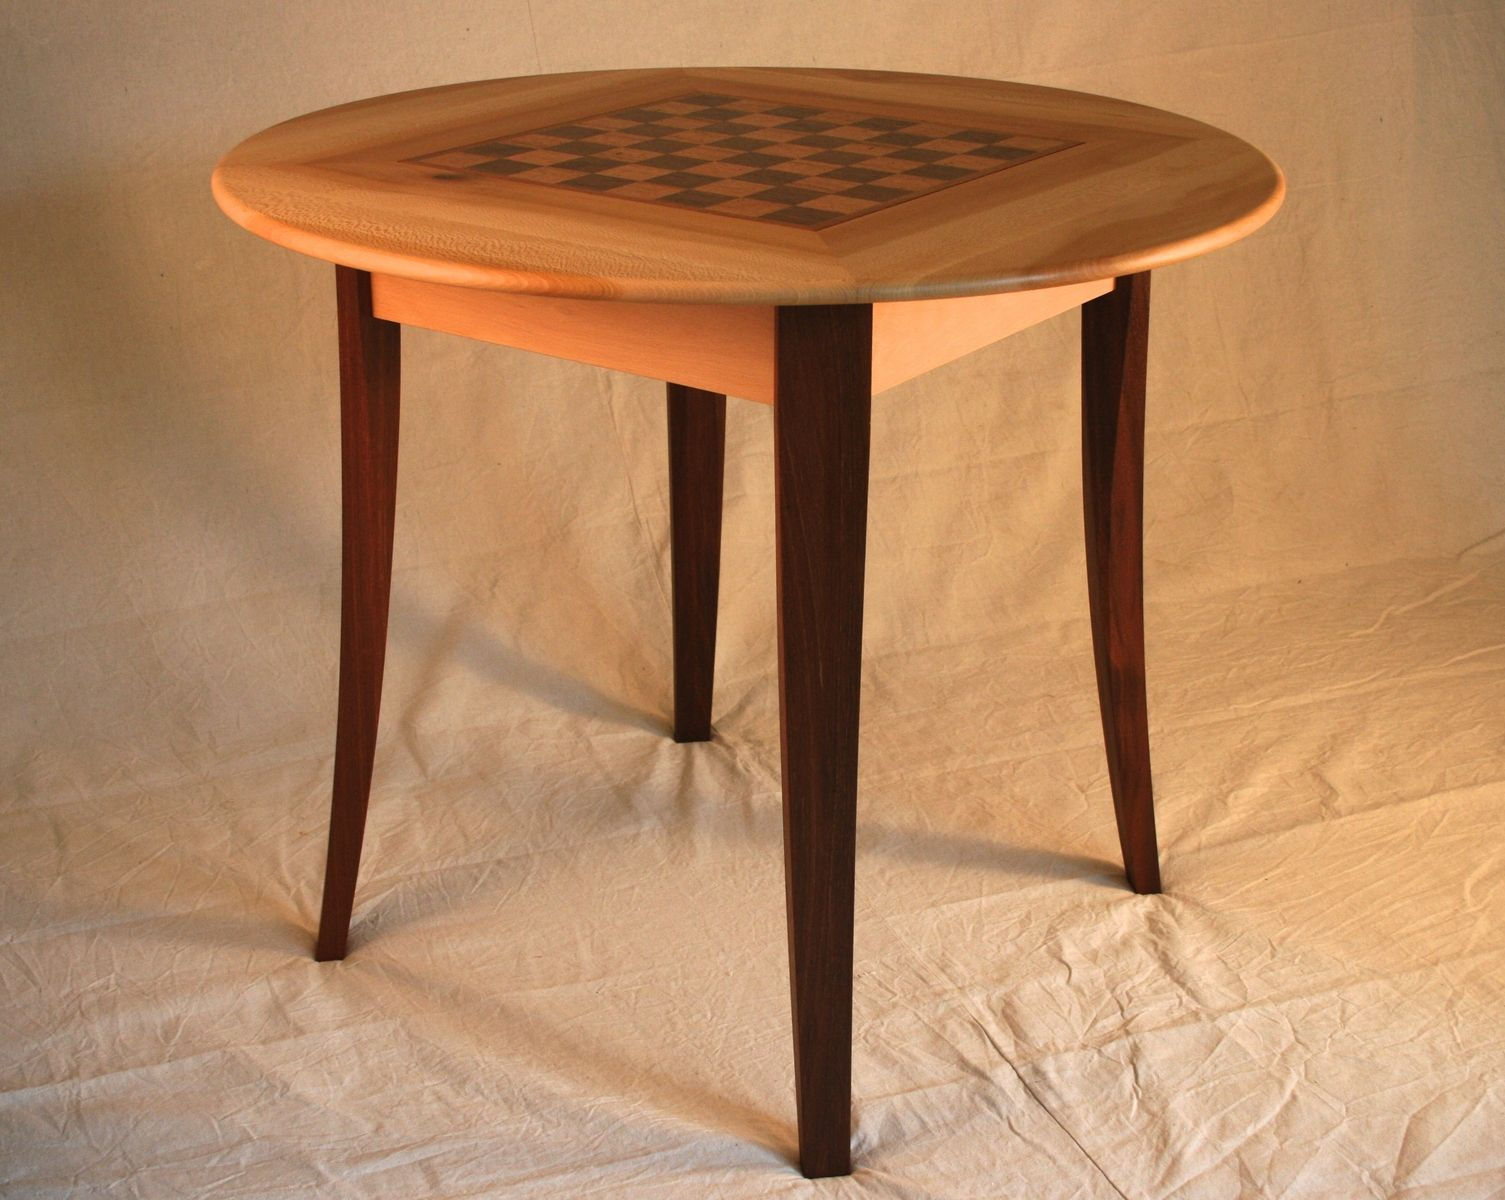 Hand Crafted Multi Wood Game Table By Culbertson Design